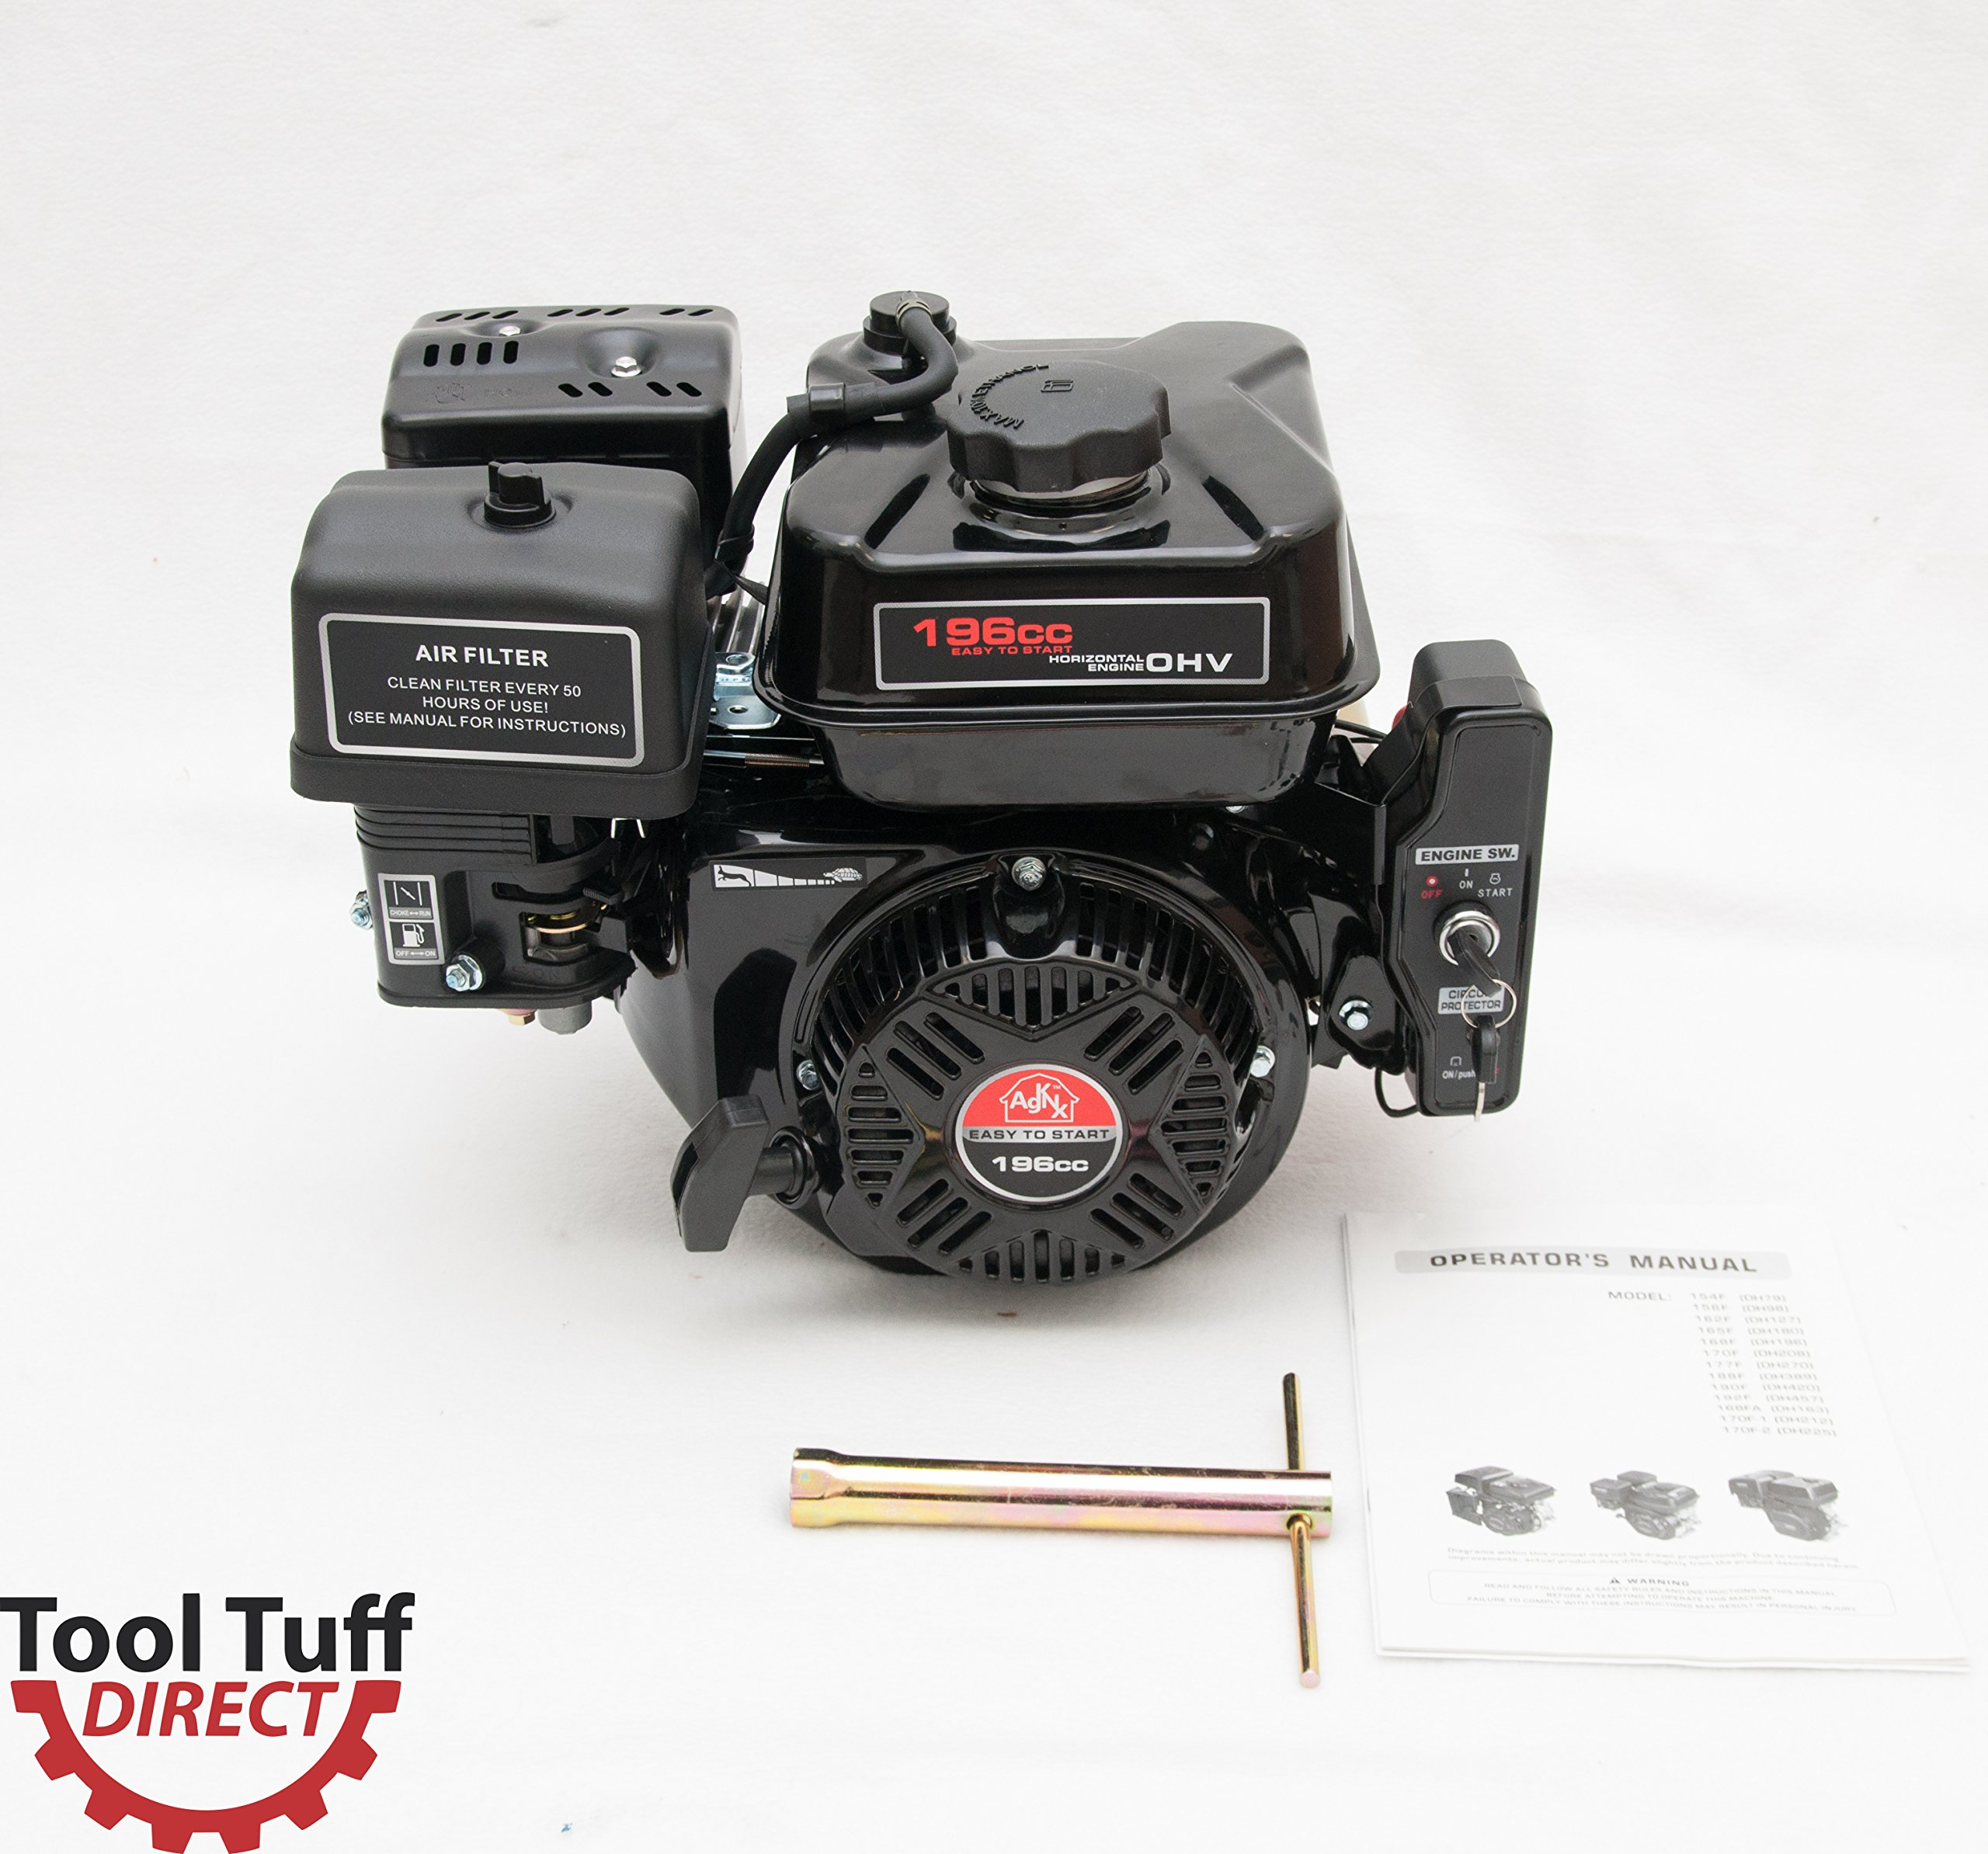 Tool Tuff New 212cc Electric Start 7.5hp Gasoline Engine, 4-Stroke, Easy-Starting, 6 Month Warranty - Great for Replacement or DIY Projects by Tool Tuff